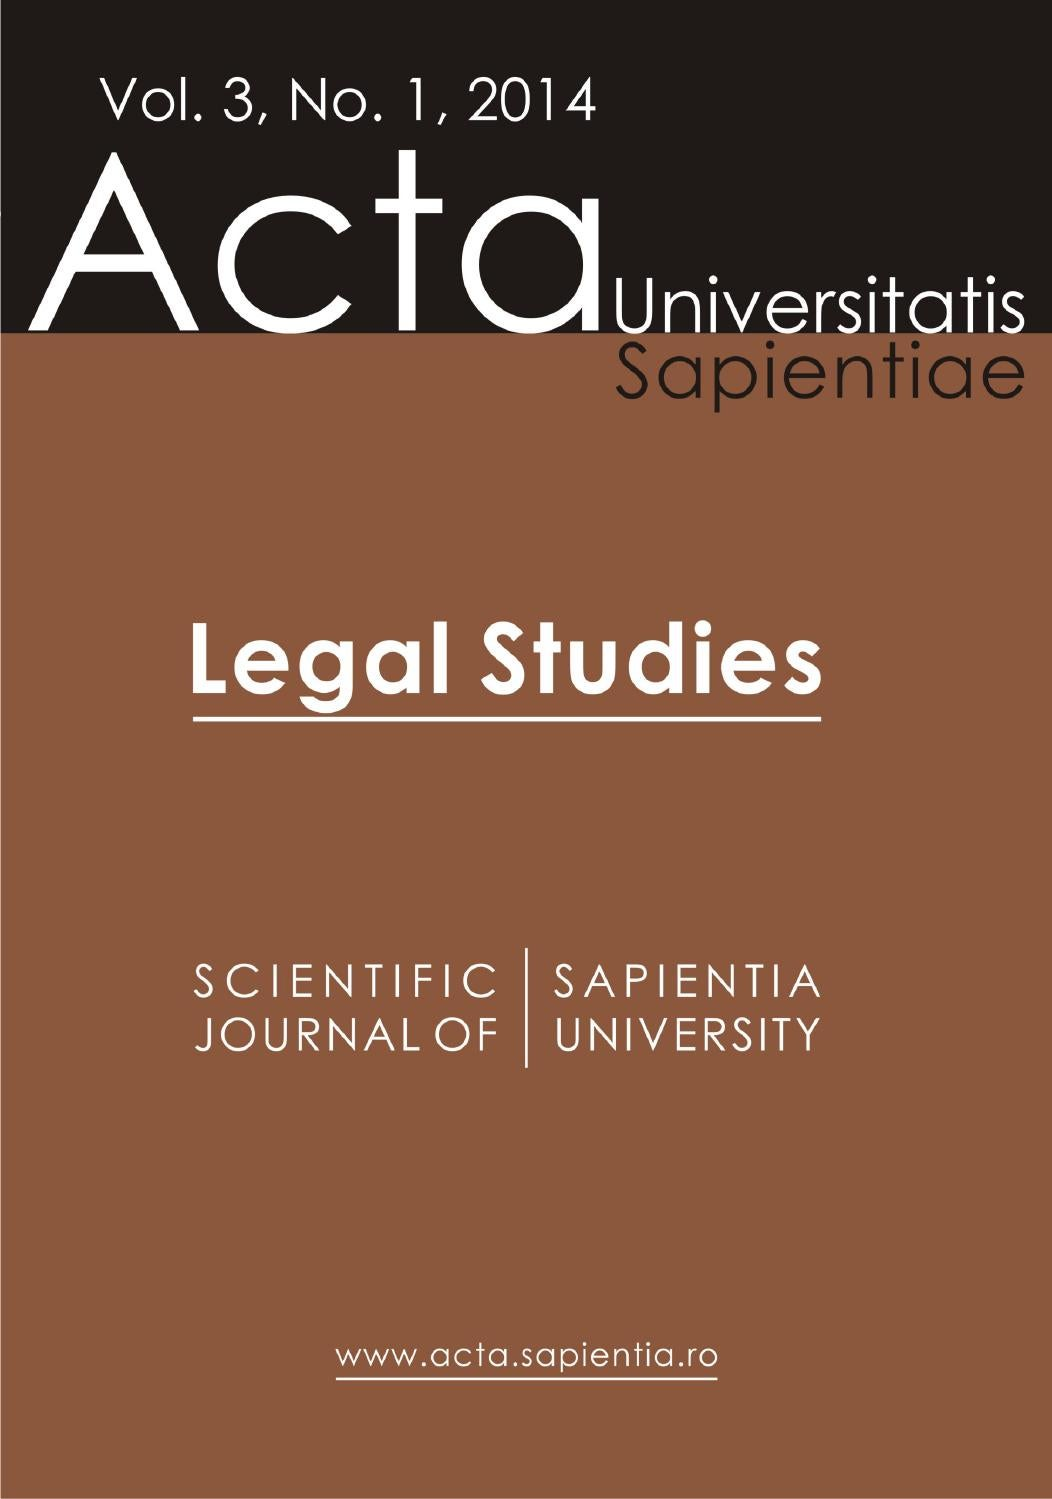 Legal Studies Vol. 3, No. 1, 2014 by Acta Universitatis Sapientiae ...